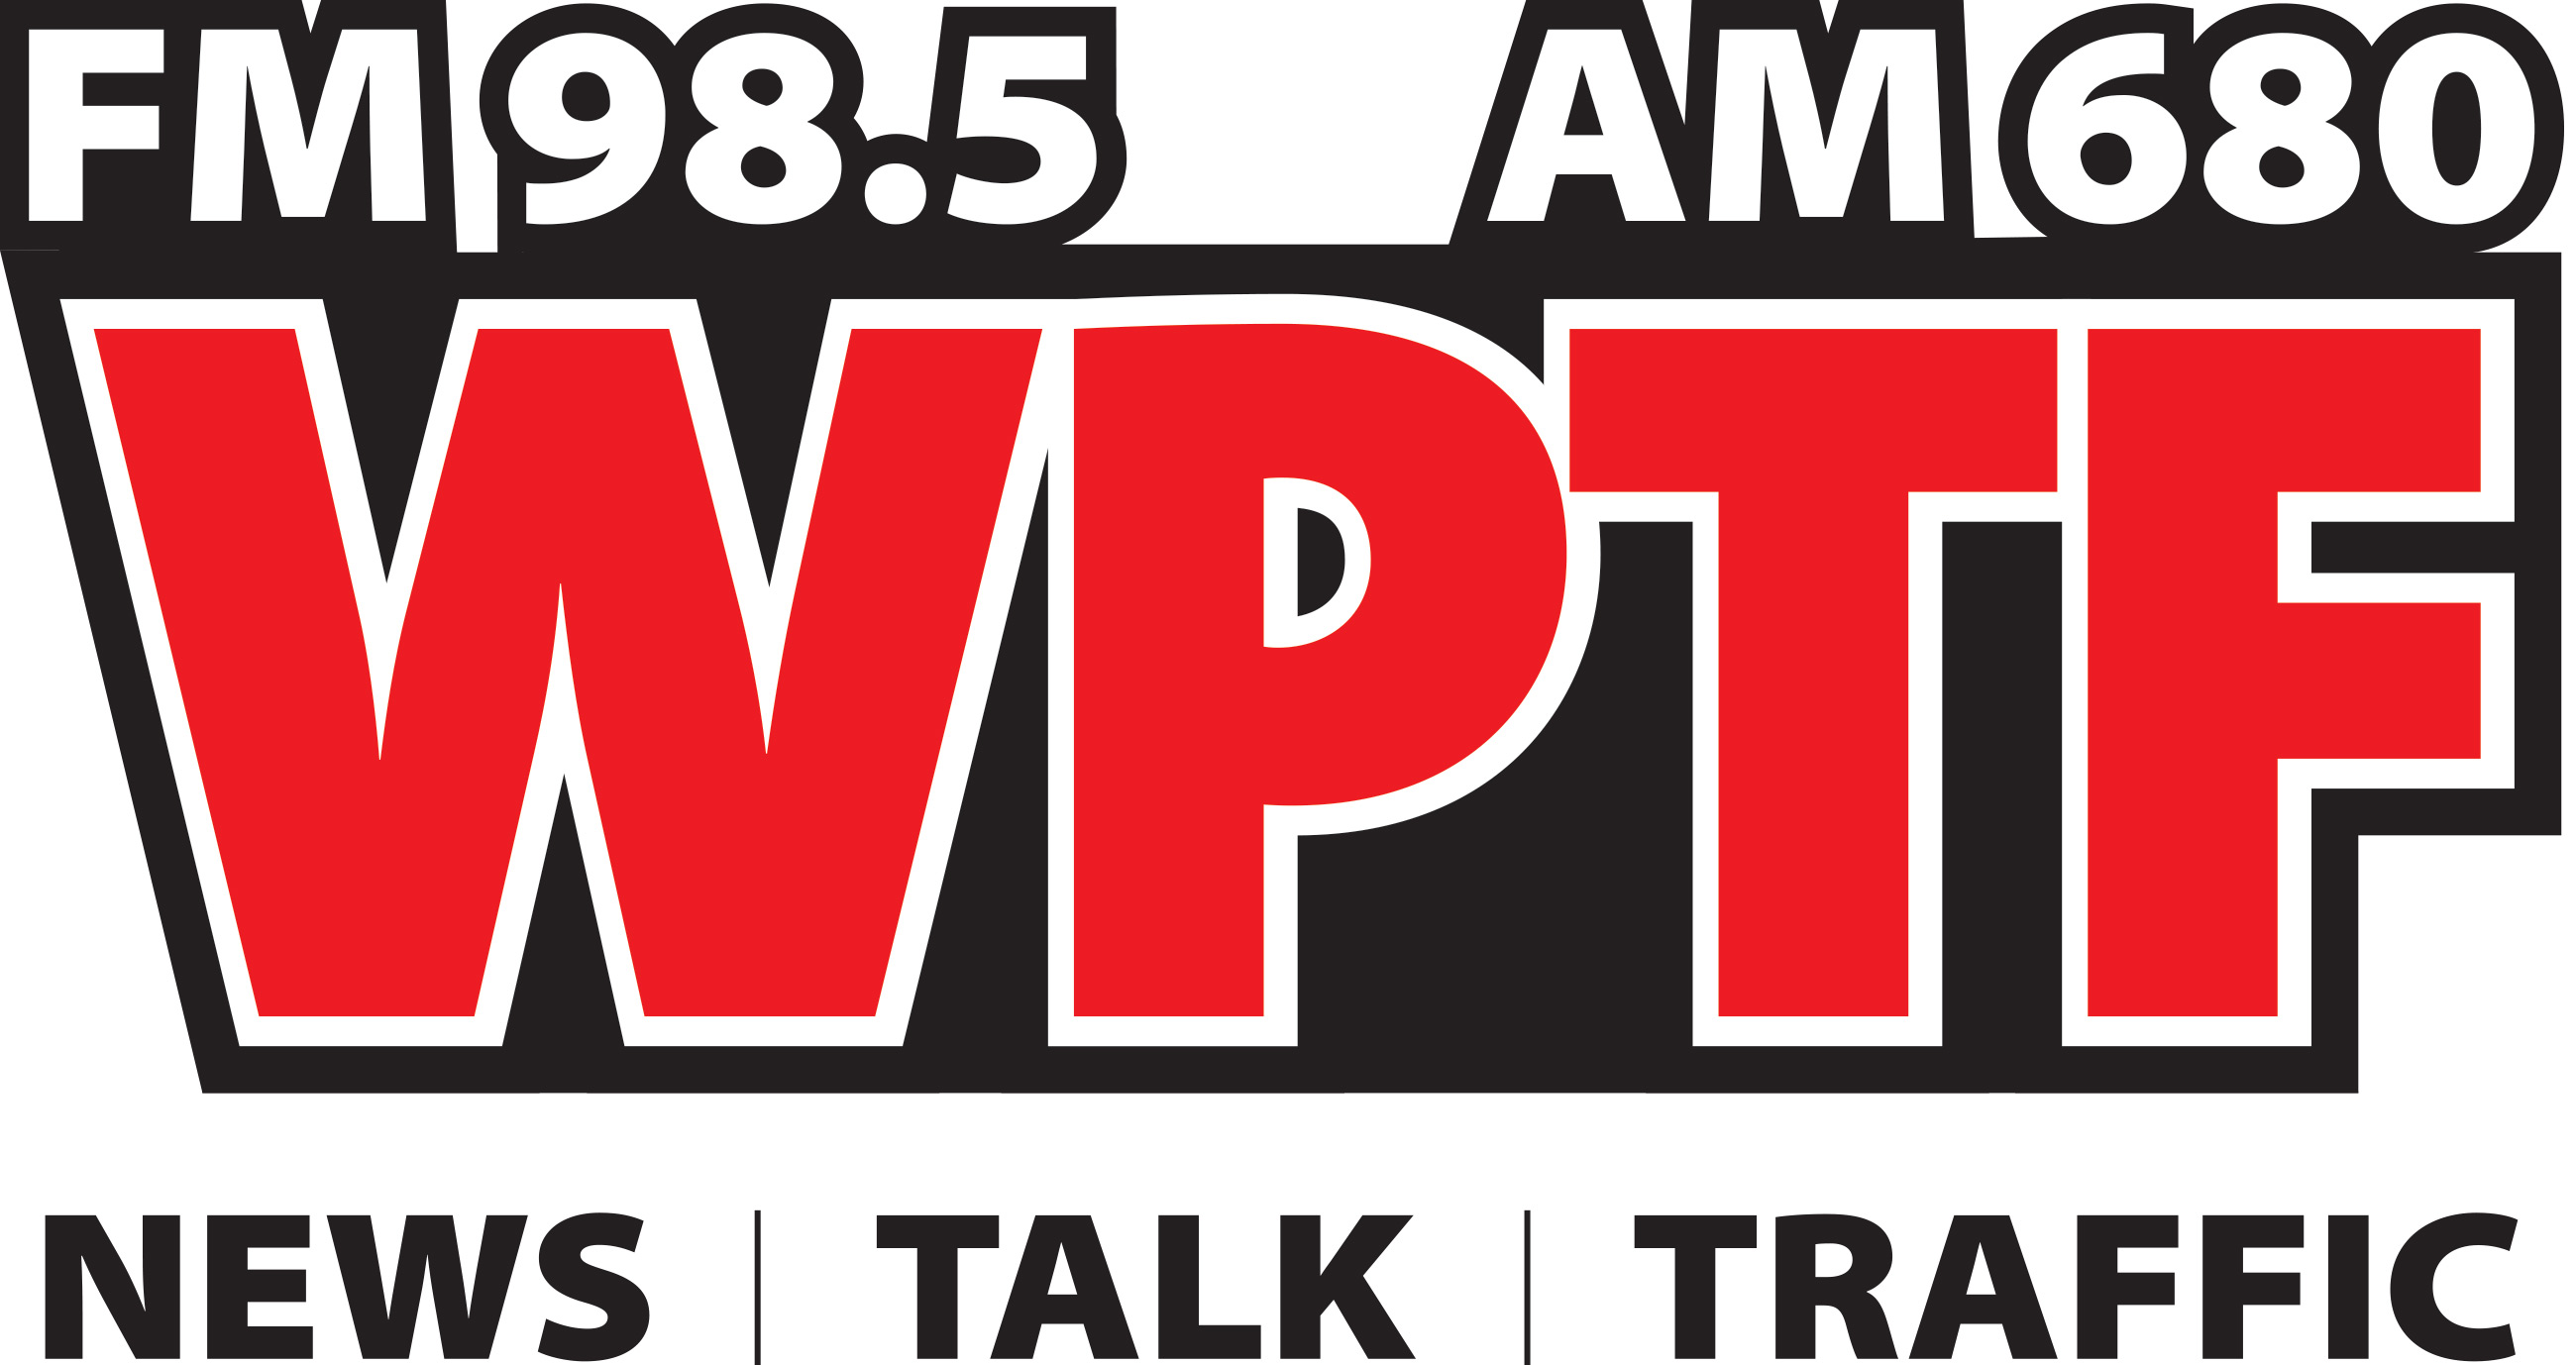 WPTF NewsRadio 680